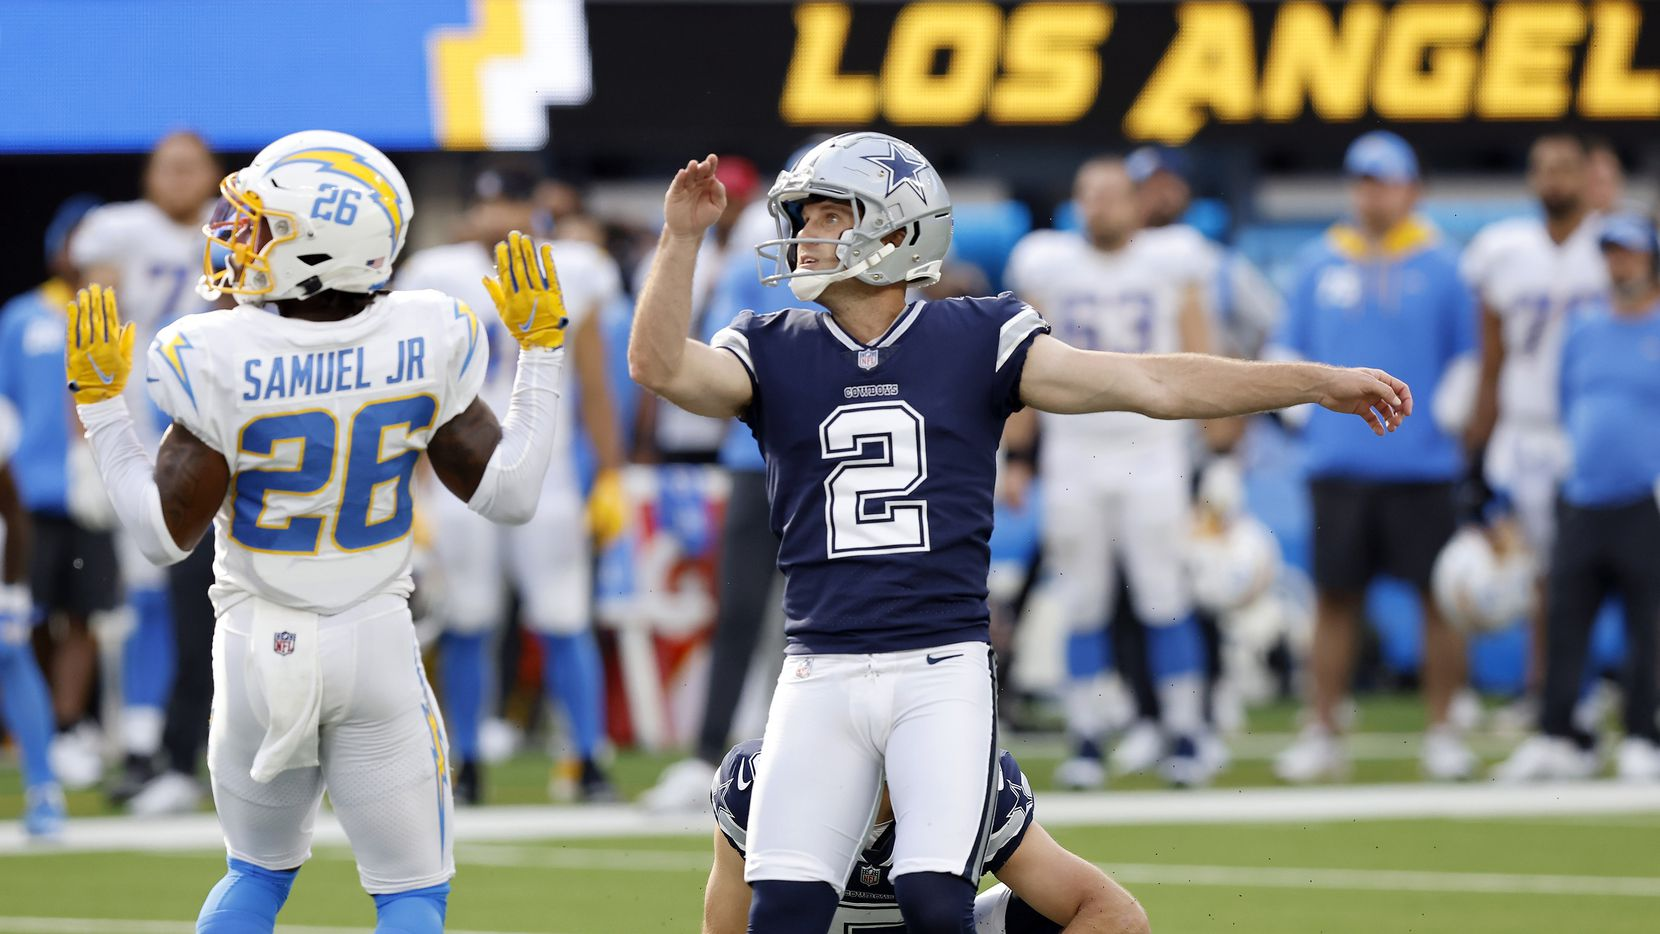 Dallas Cowboys place kicker Greg Zuerlein (2) watches his winning field goal at the end of the game to defeat the Los Angeles Chargers, 20-17, at SoFi Stadium in Inglewood, California, Sunday, September 19, 2021.